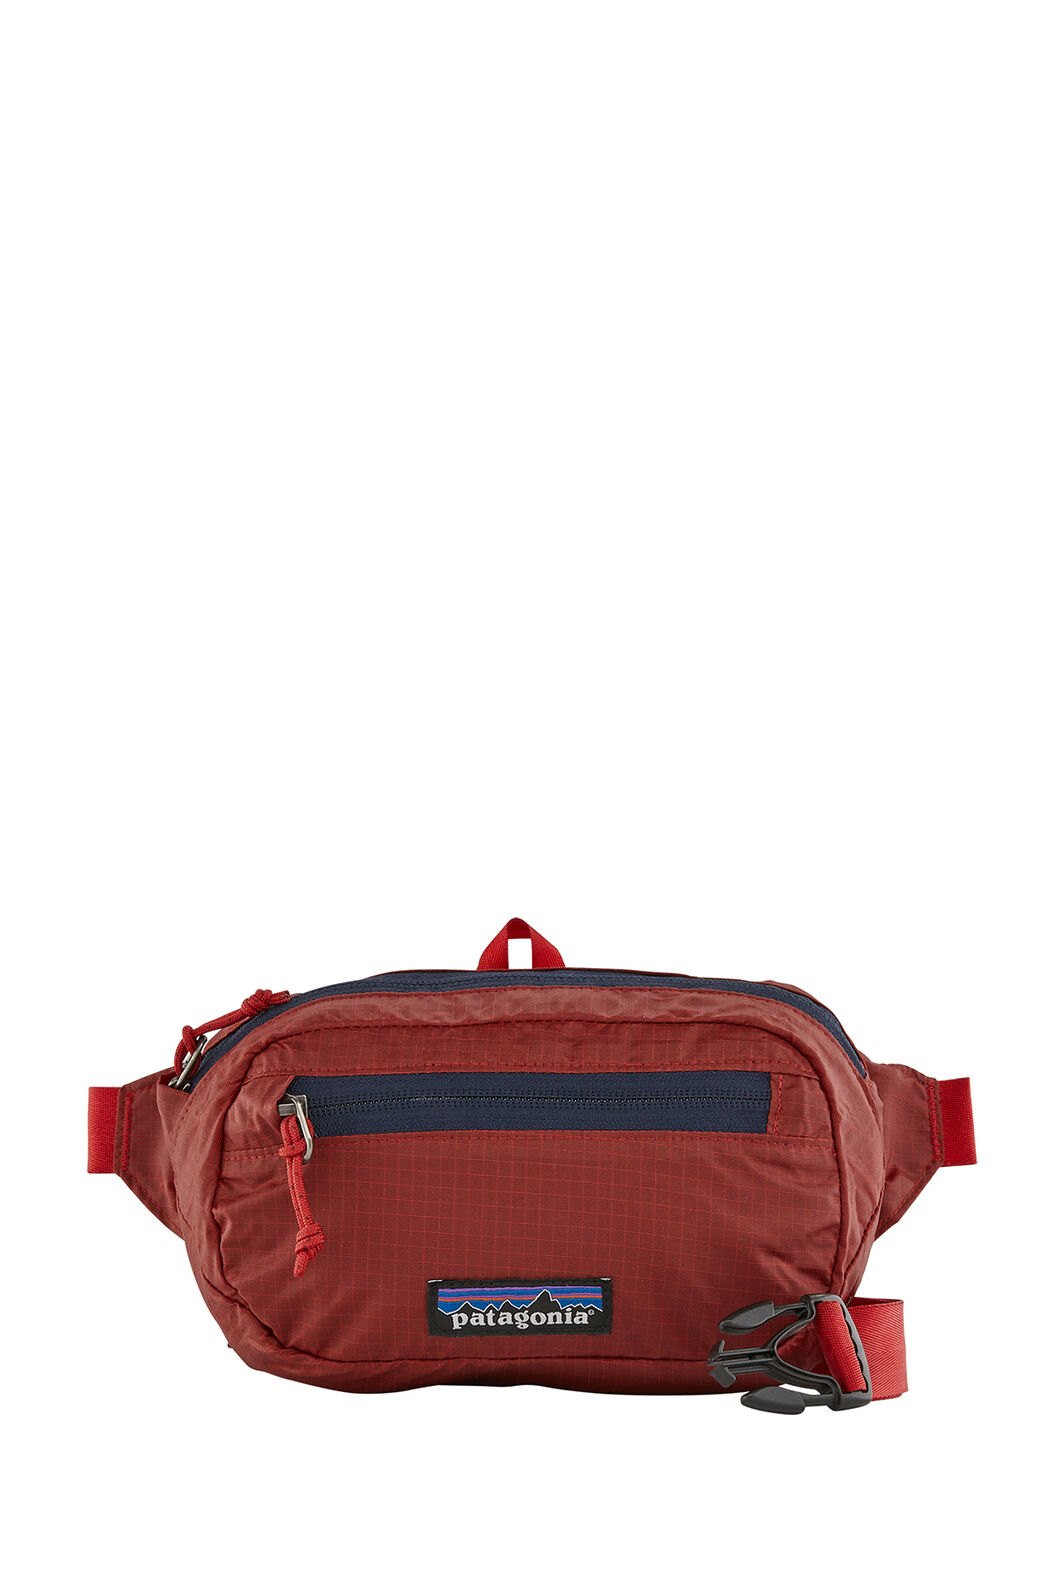 Patagonia Ultralight Black Hole Hip Pack   , Red, hi-res